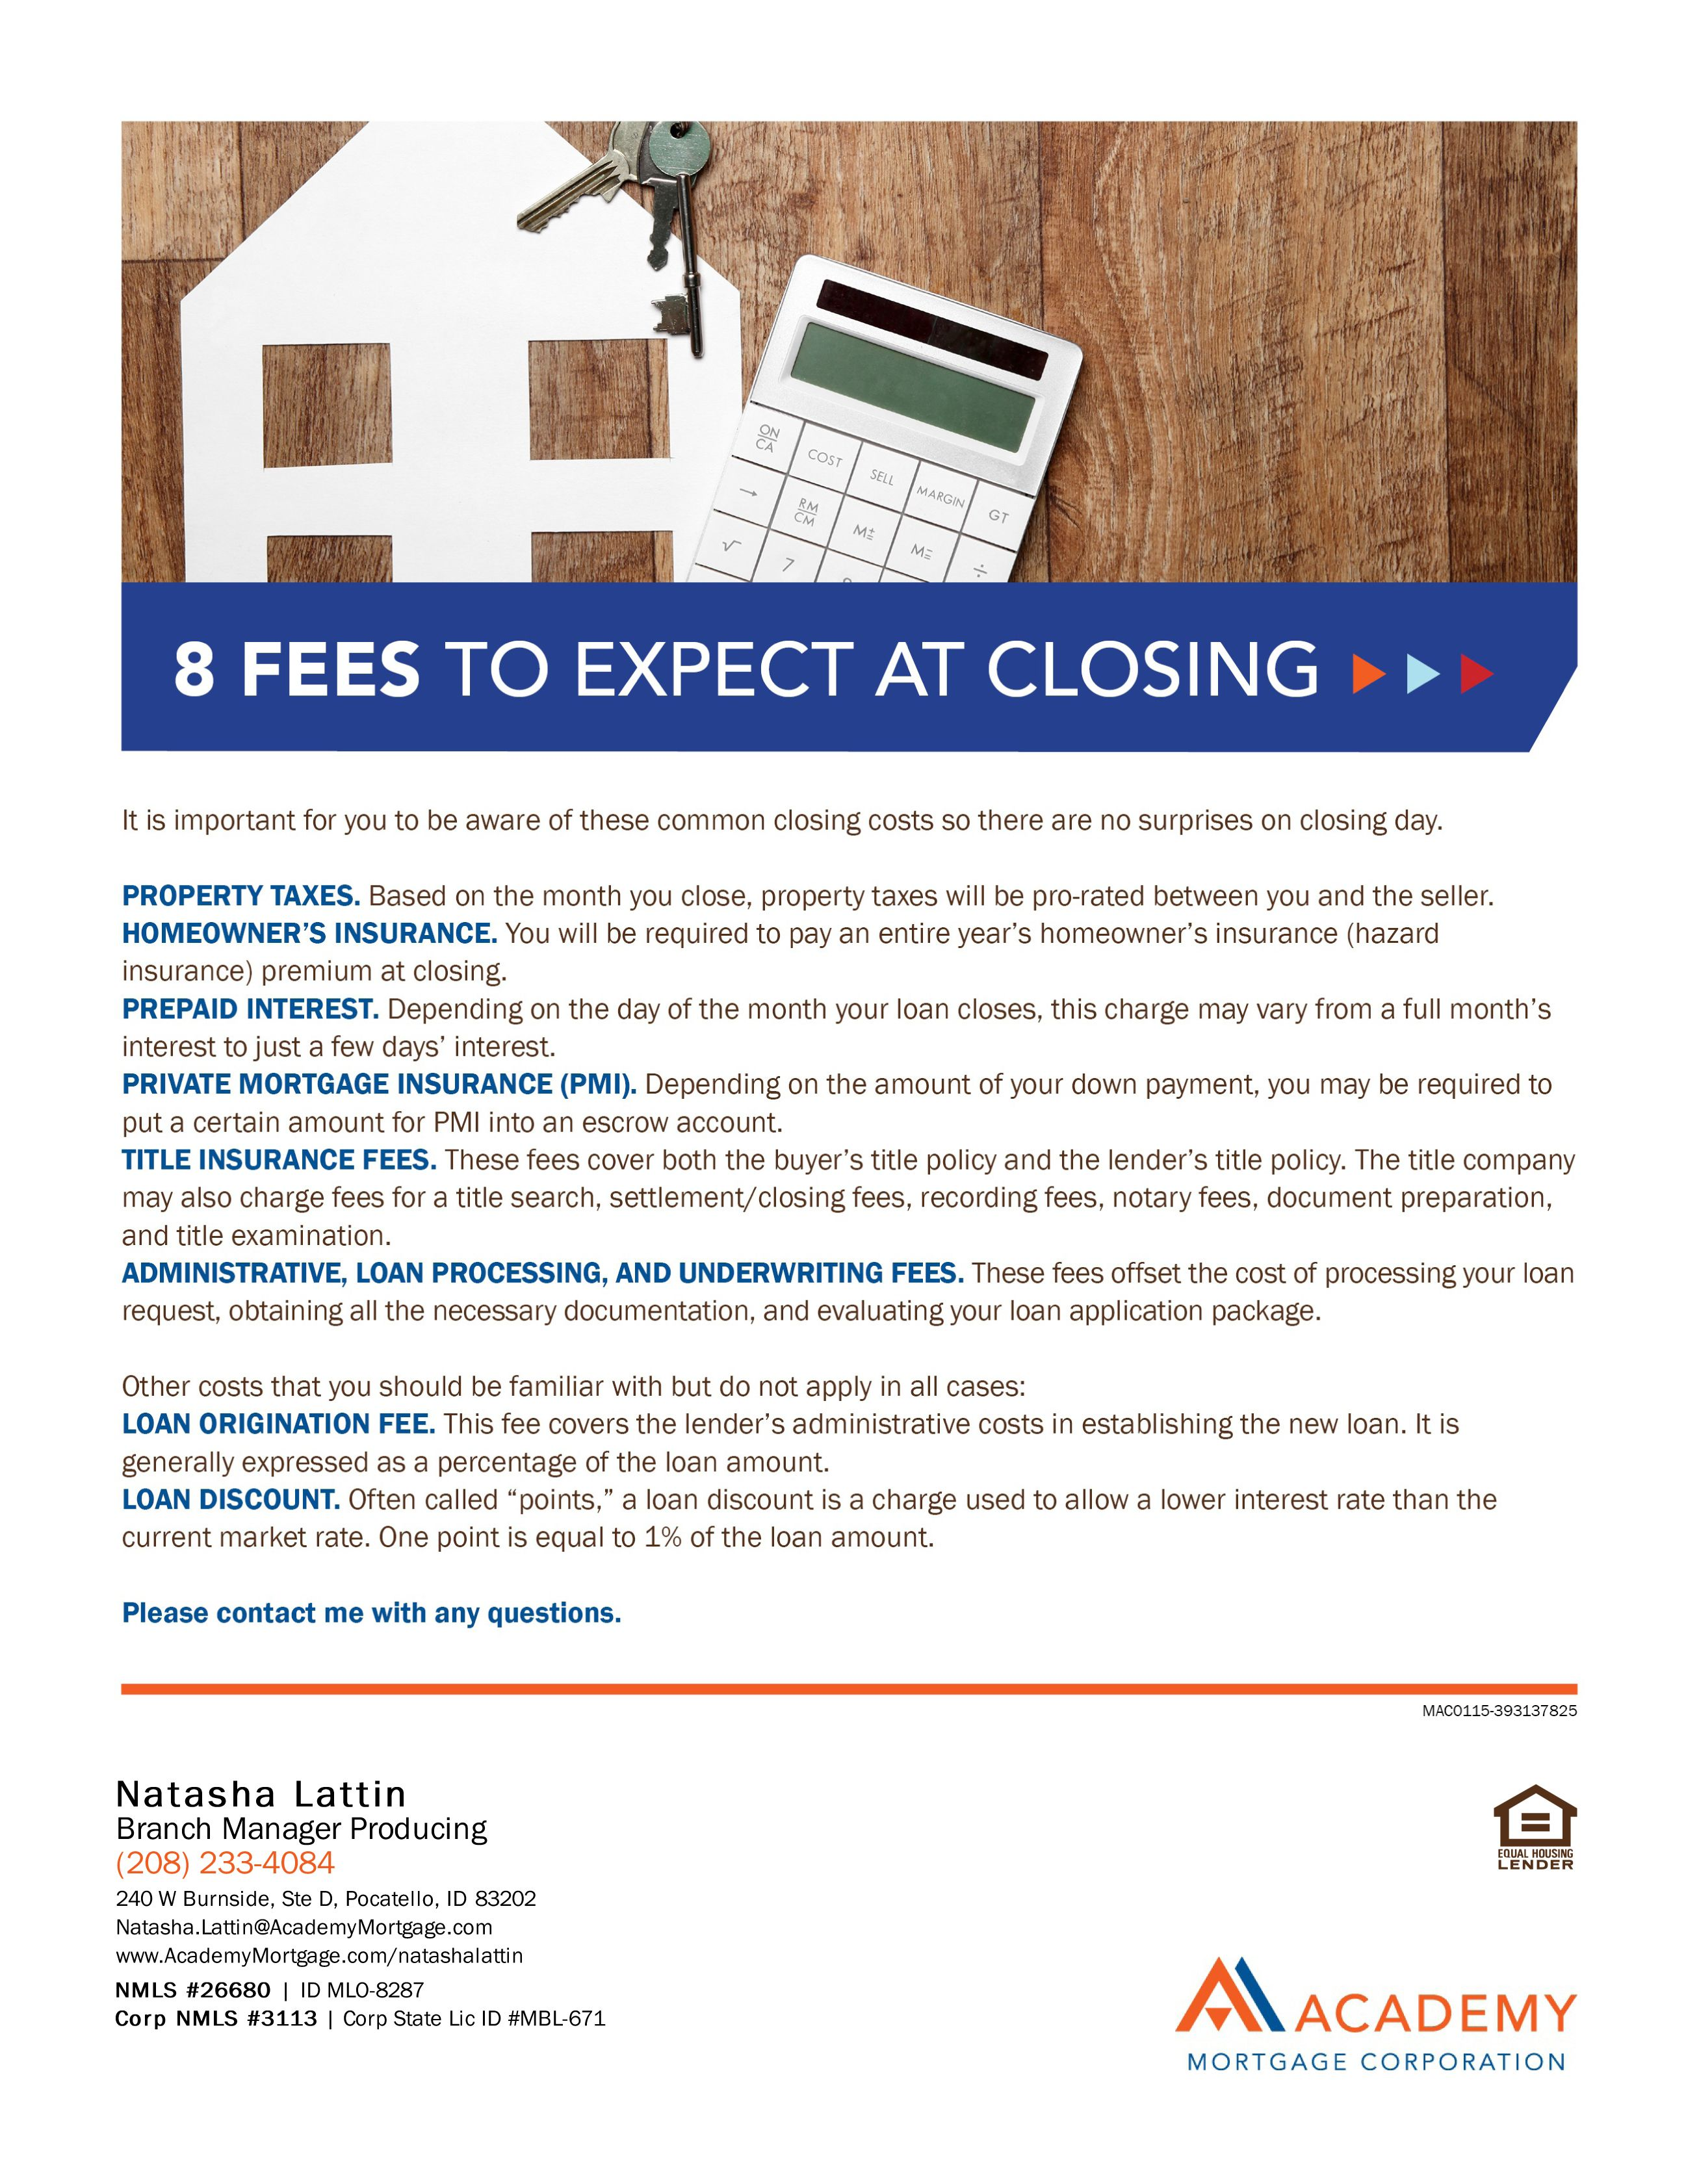 8 fees to expect at closing home loans mortgage